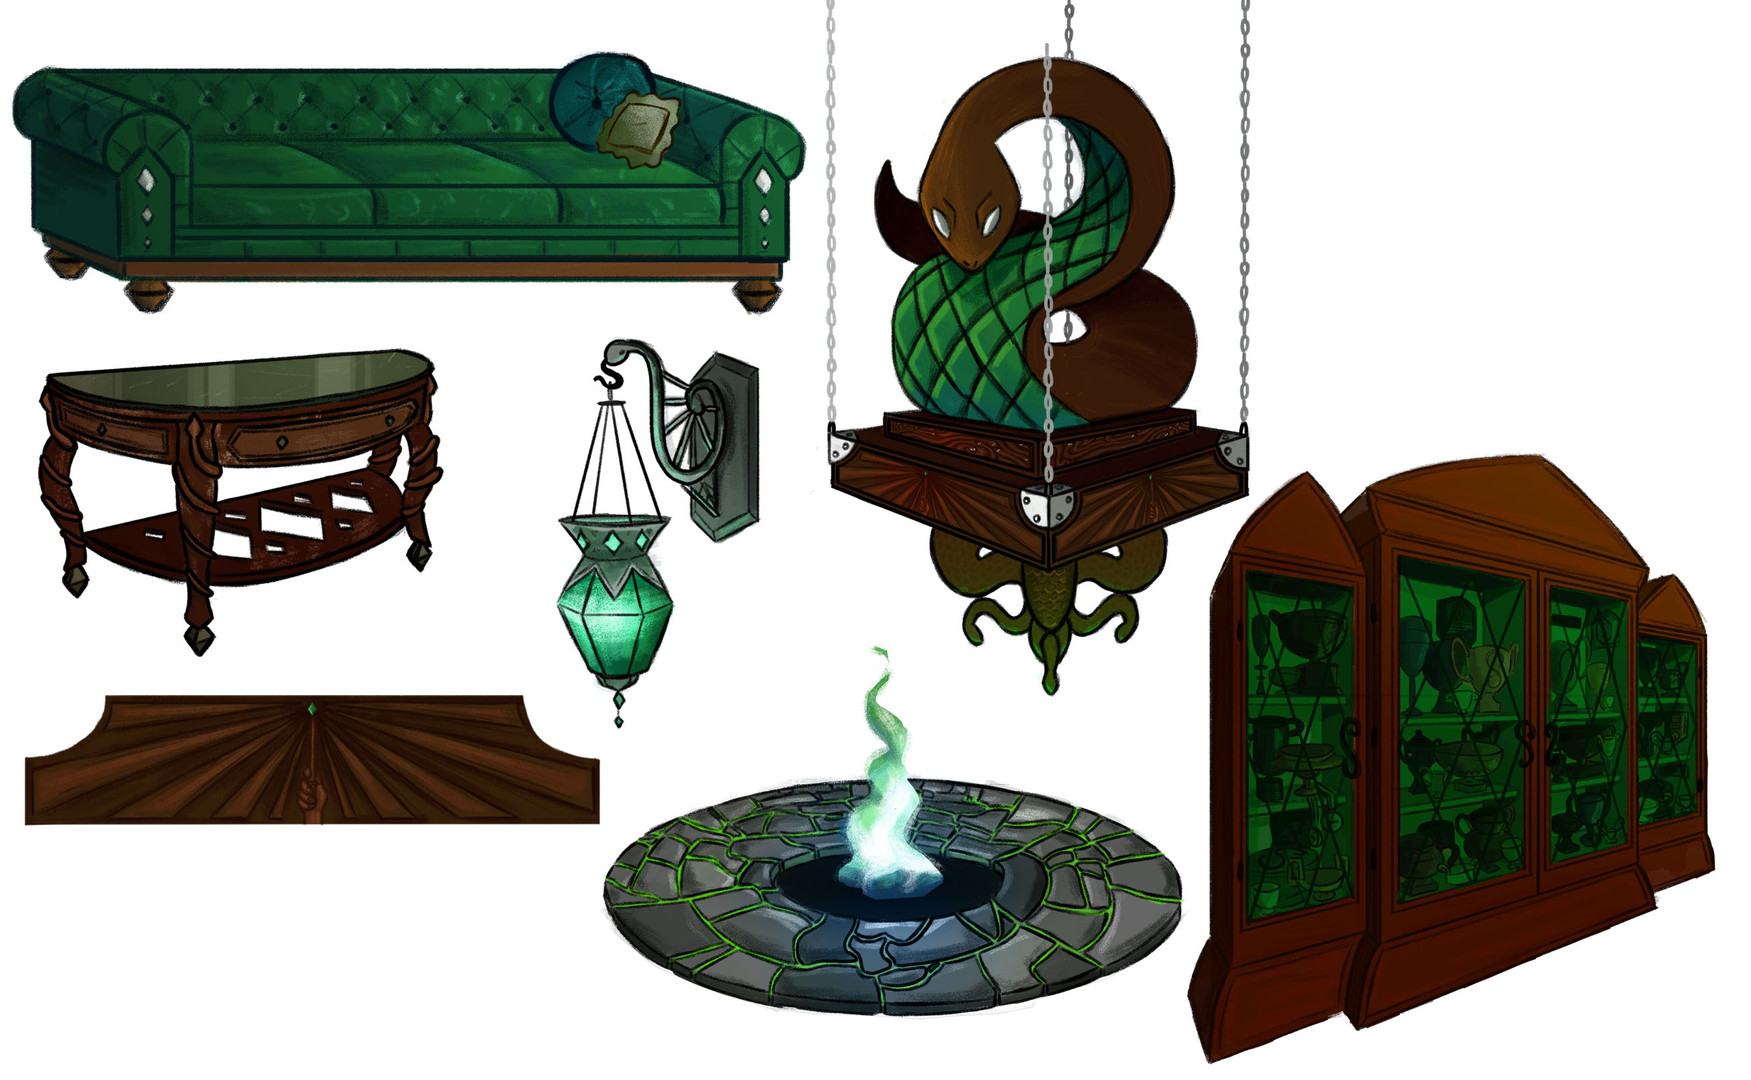 SlytherinCommonRoomAllPropsPage.jpg